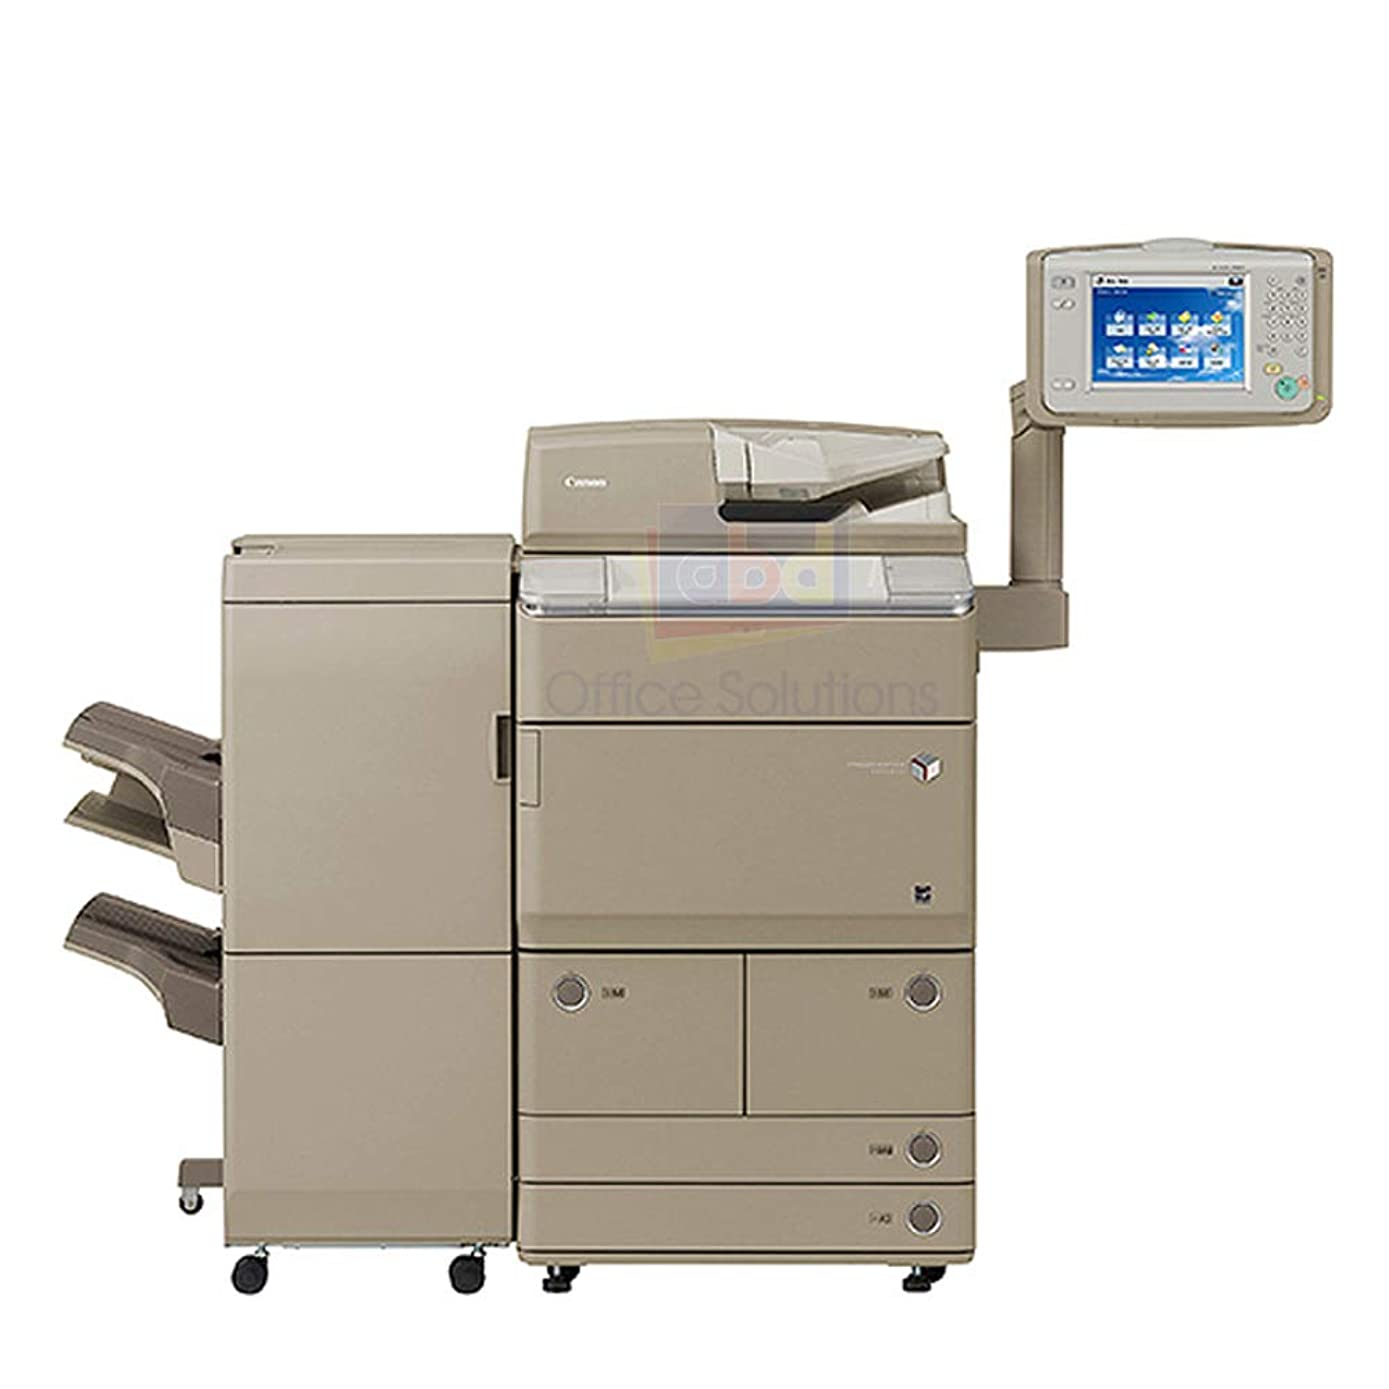 Canon ImageRunner Advance 8285 A3 Monochrome Laser Multi-Function Copier - 85ppm, Copy, Print, Color Scan, Send, Store, Auto Duplex, Network, Staple Finisher, A3+/SRA3/A3/A4/A5, 2 Trays, Dual Drawers